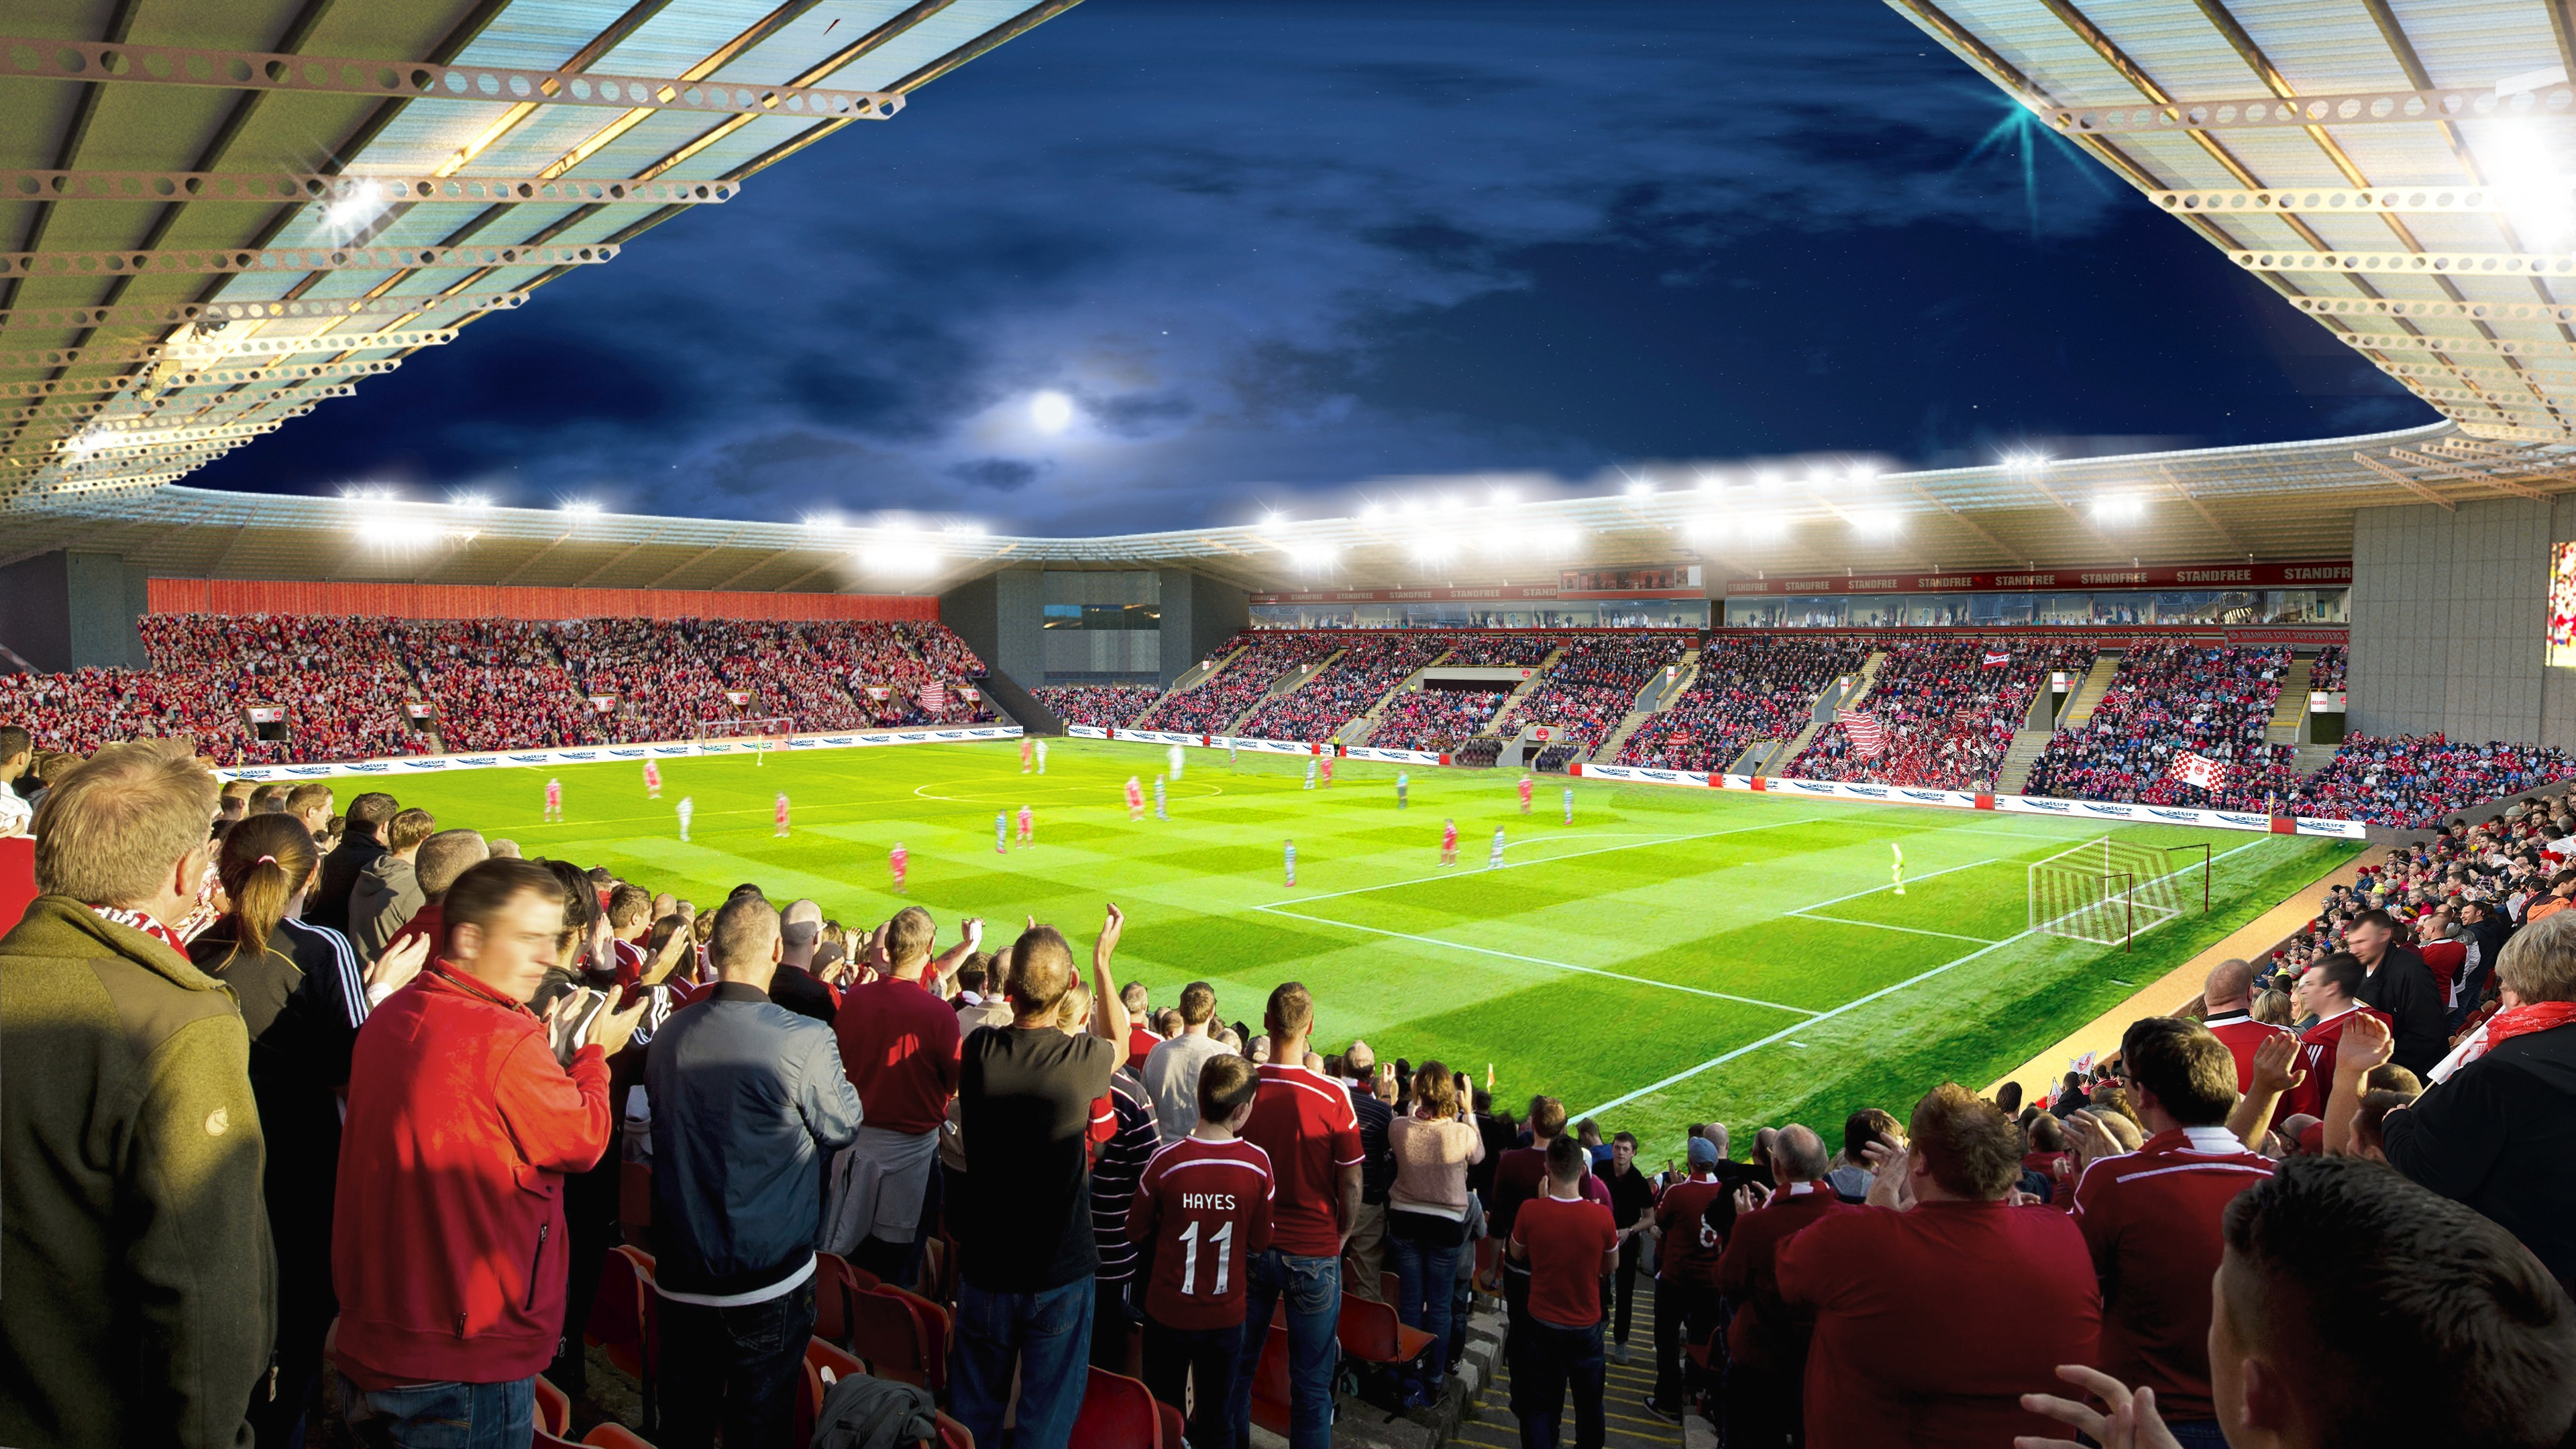 An artist's impression of the new stadium that could be built at Kingsford.